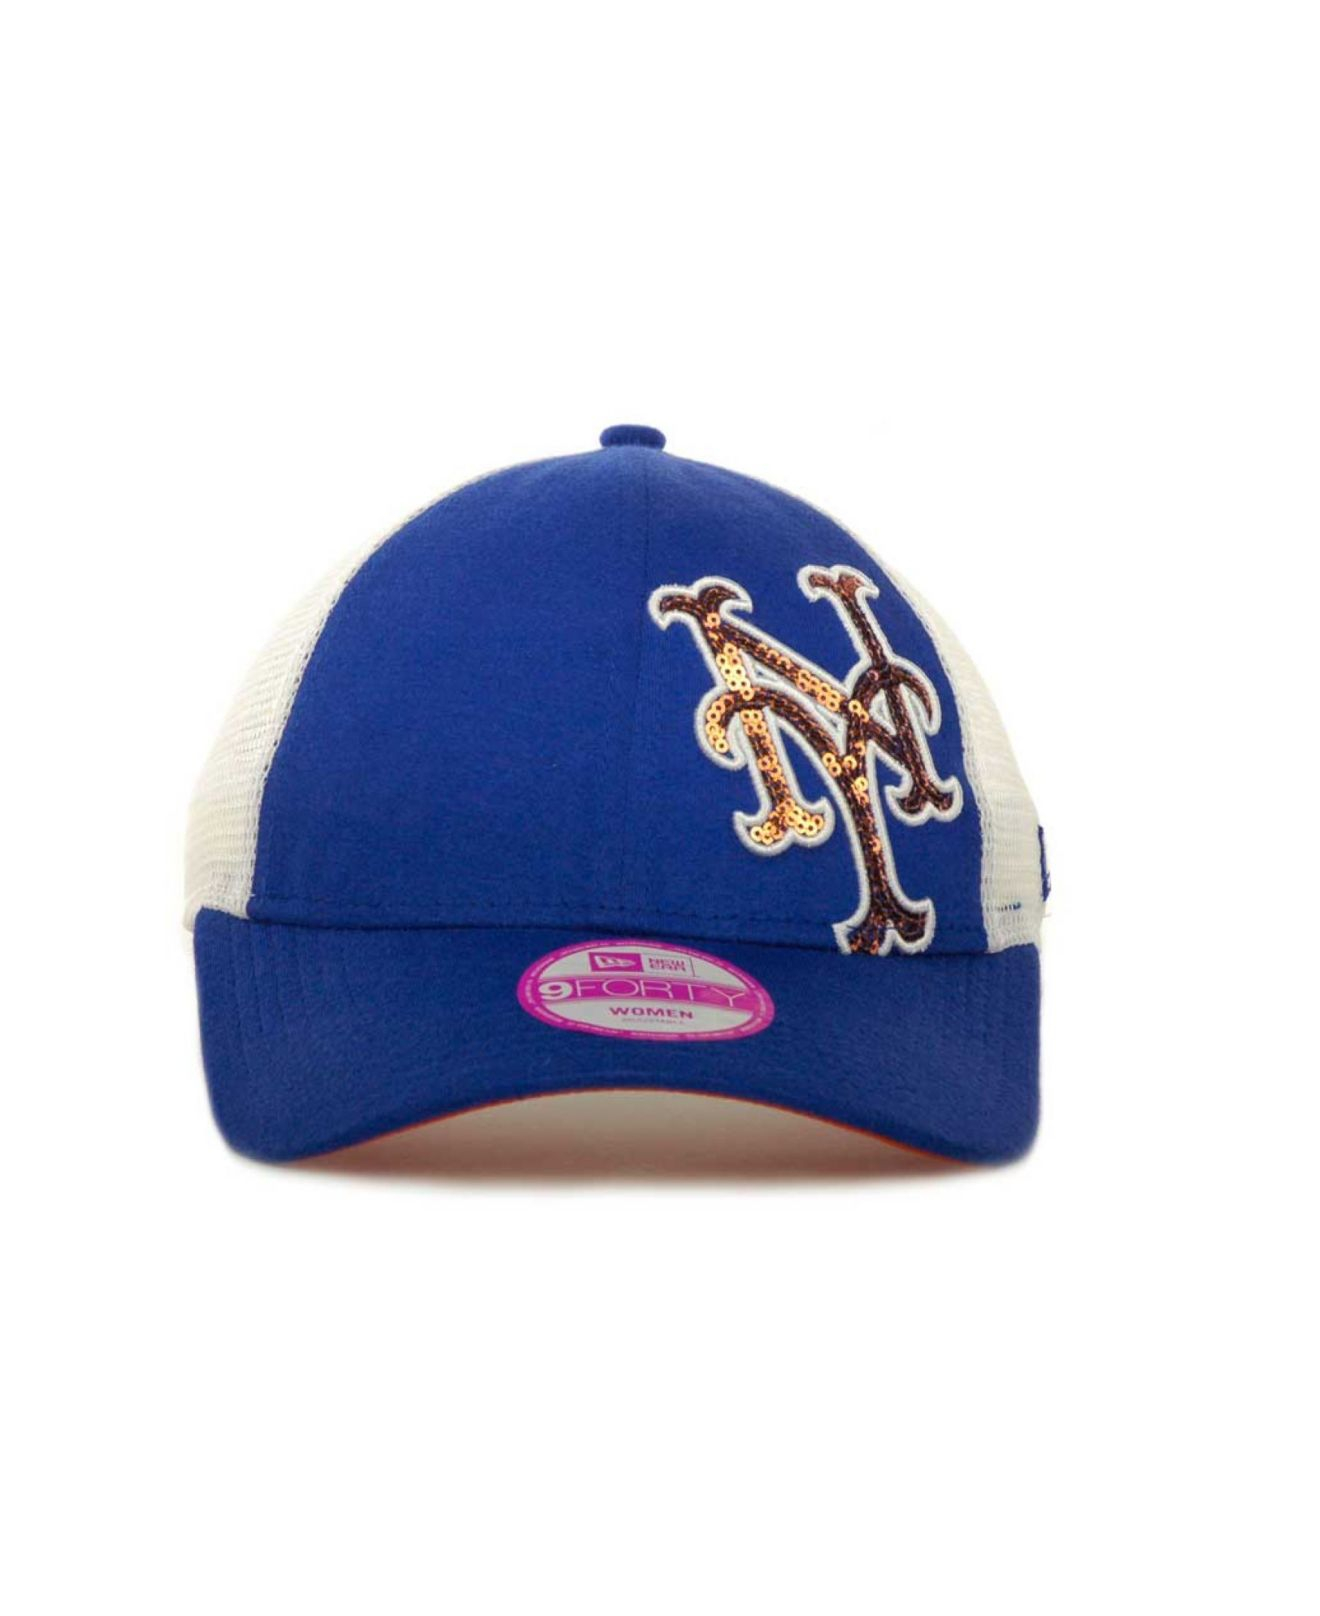 Lyst - KTZ Womens New York Mets Mlb Sequin Shimmer 9forty Cap in Blue 3a045dfa3b